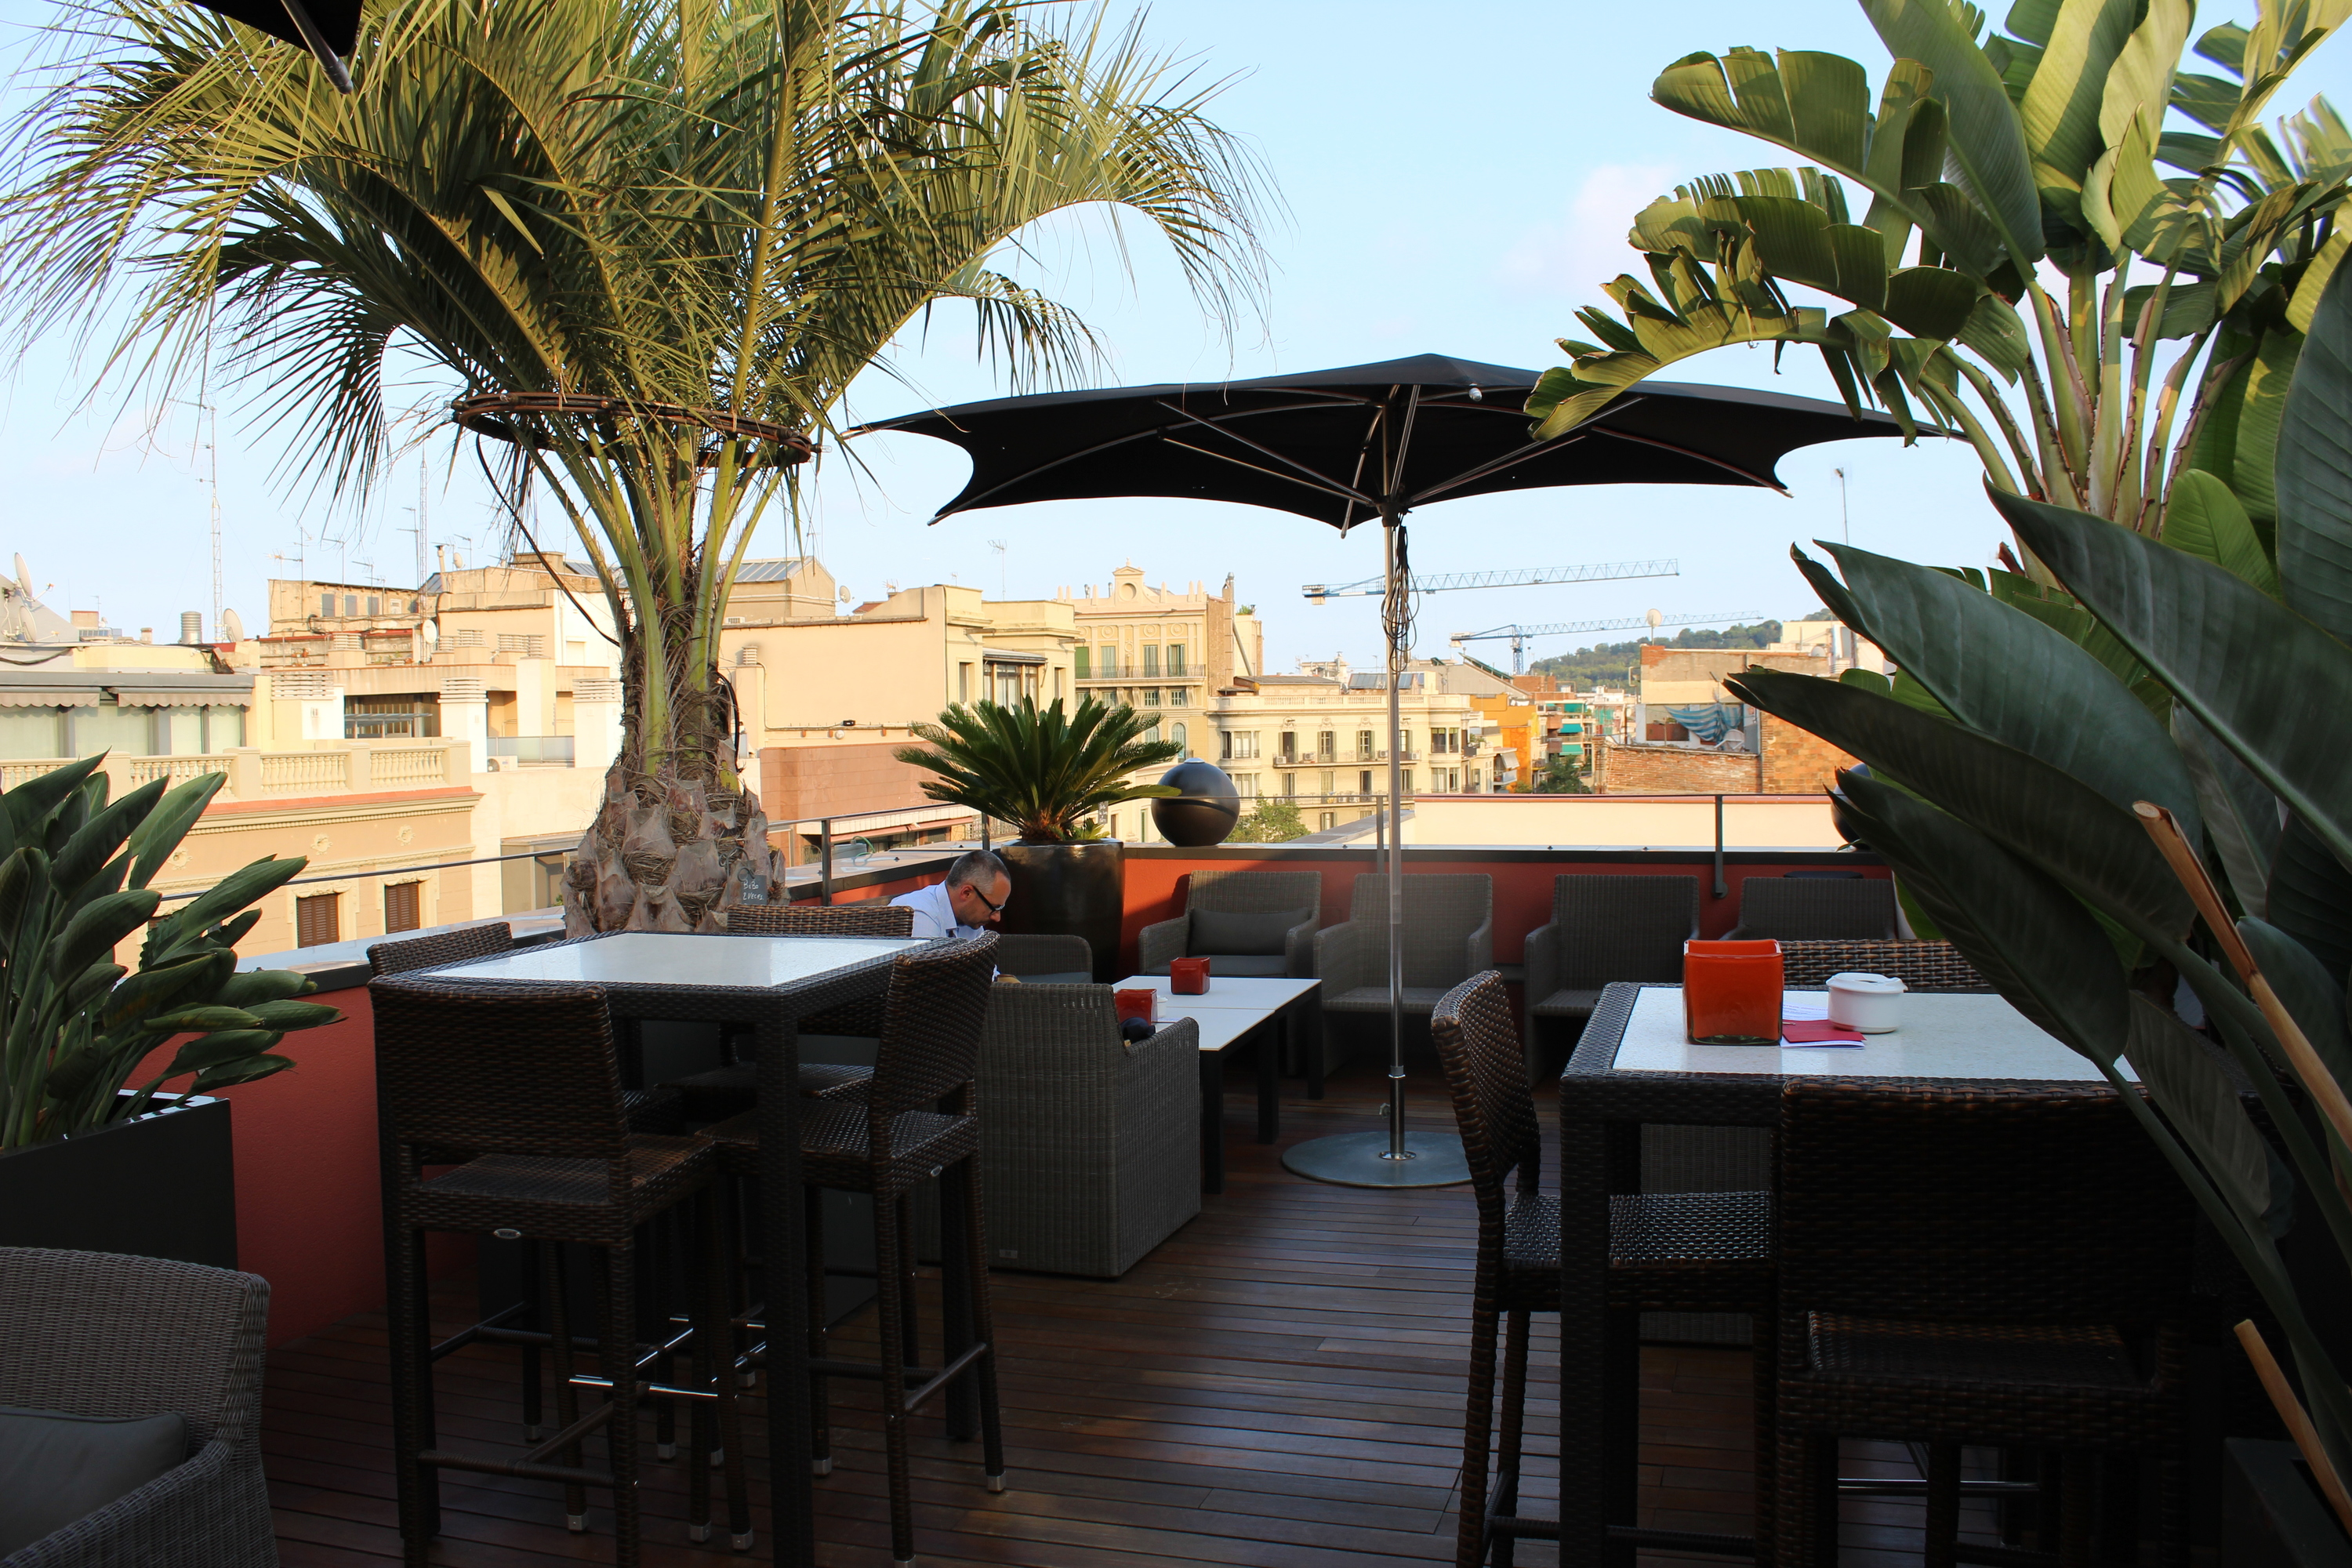 11 Best Rooftop Bars In Barcelona For Drinks With A View